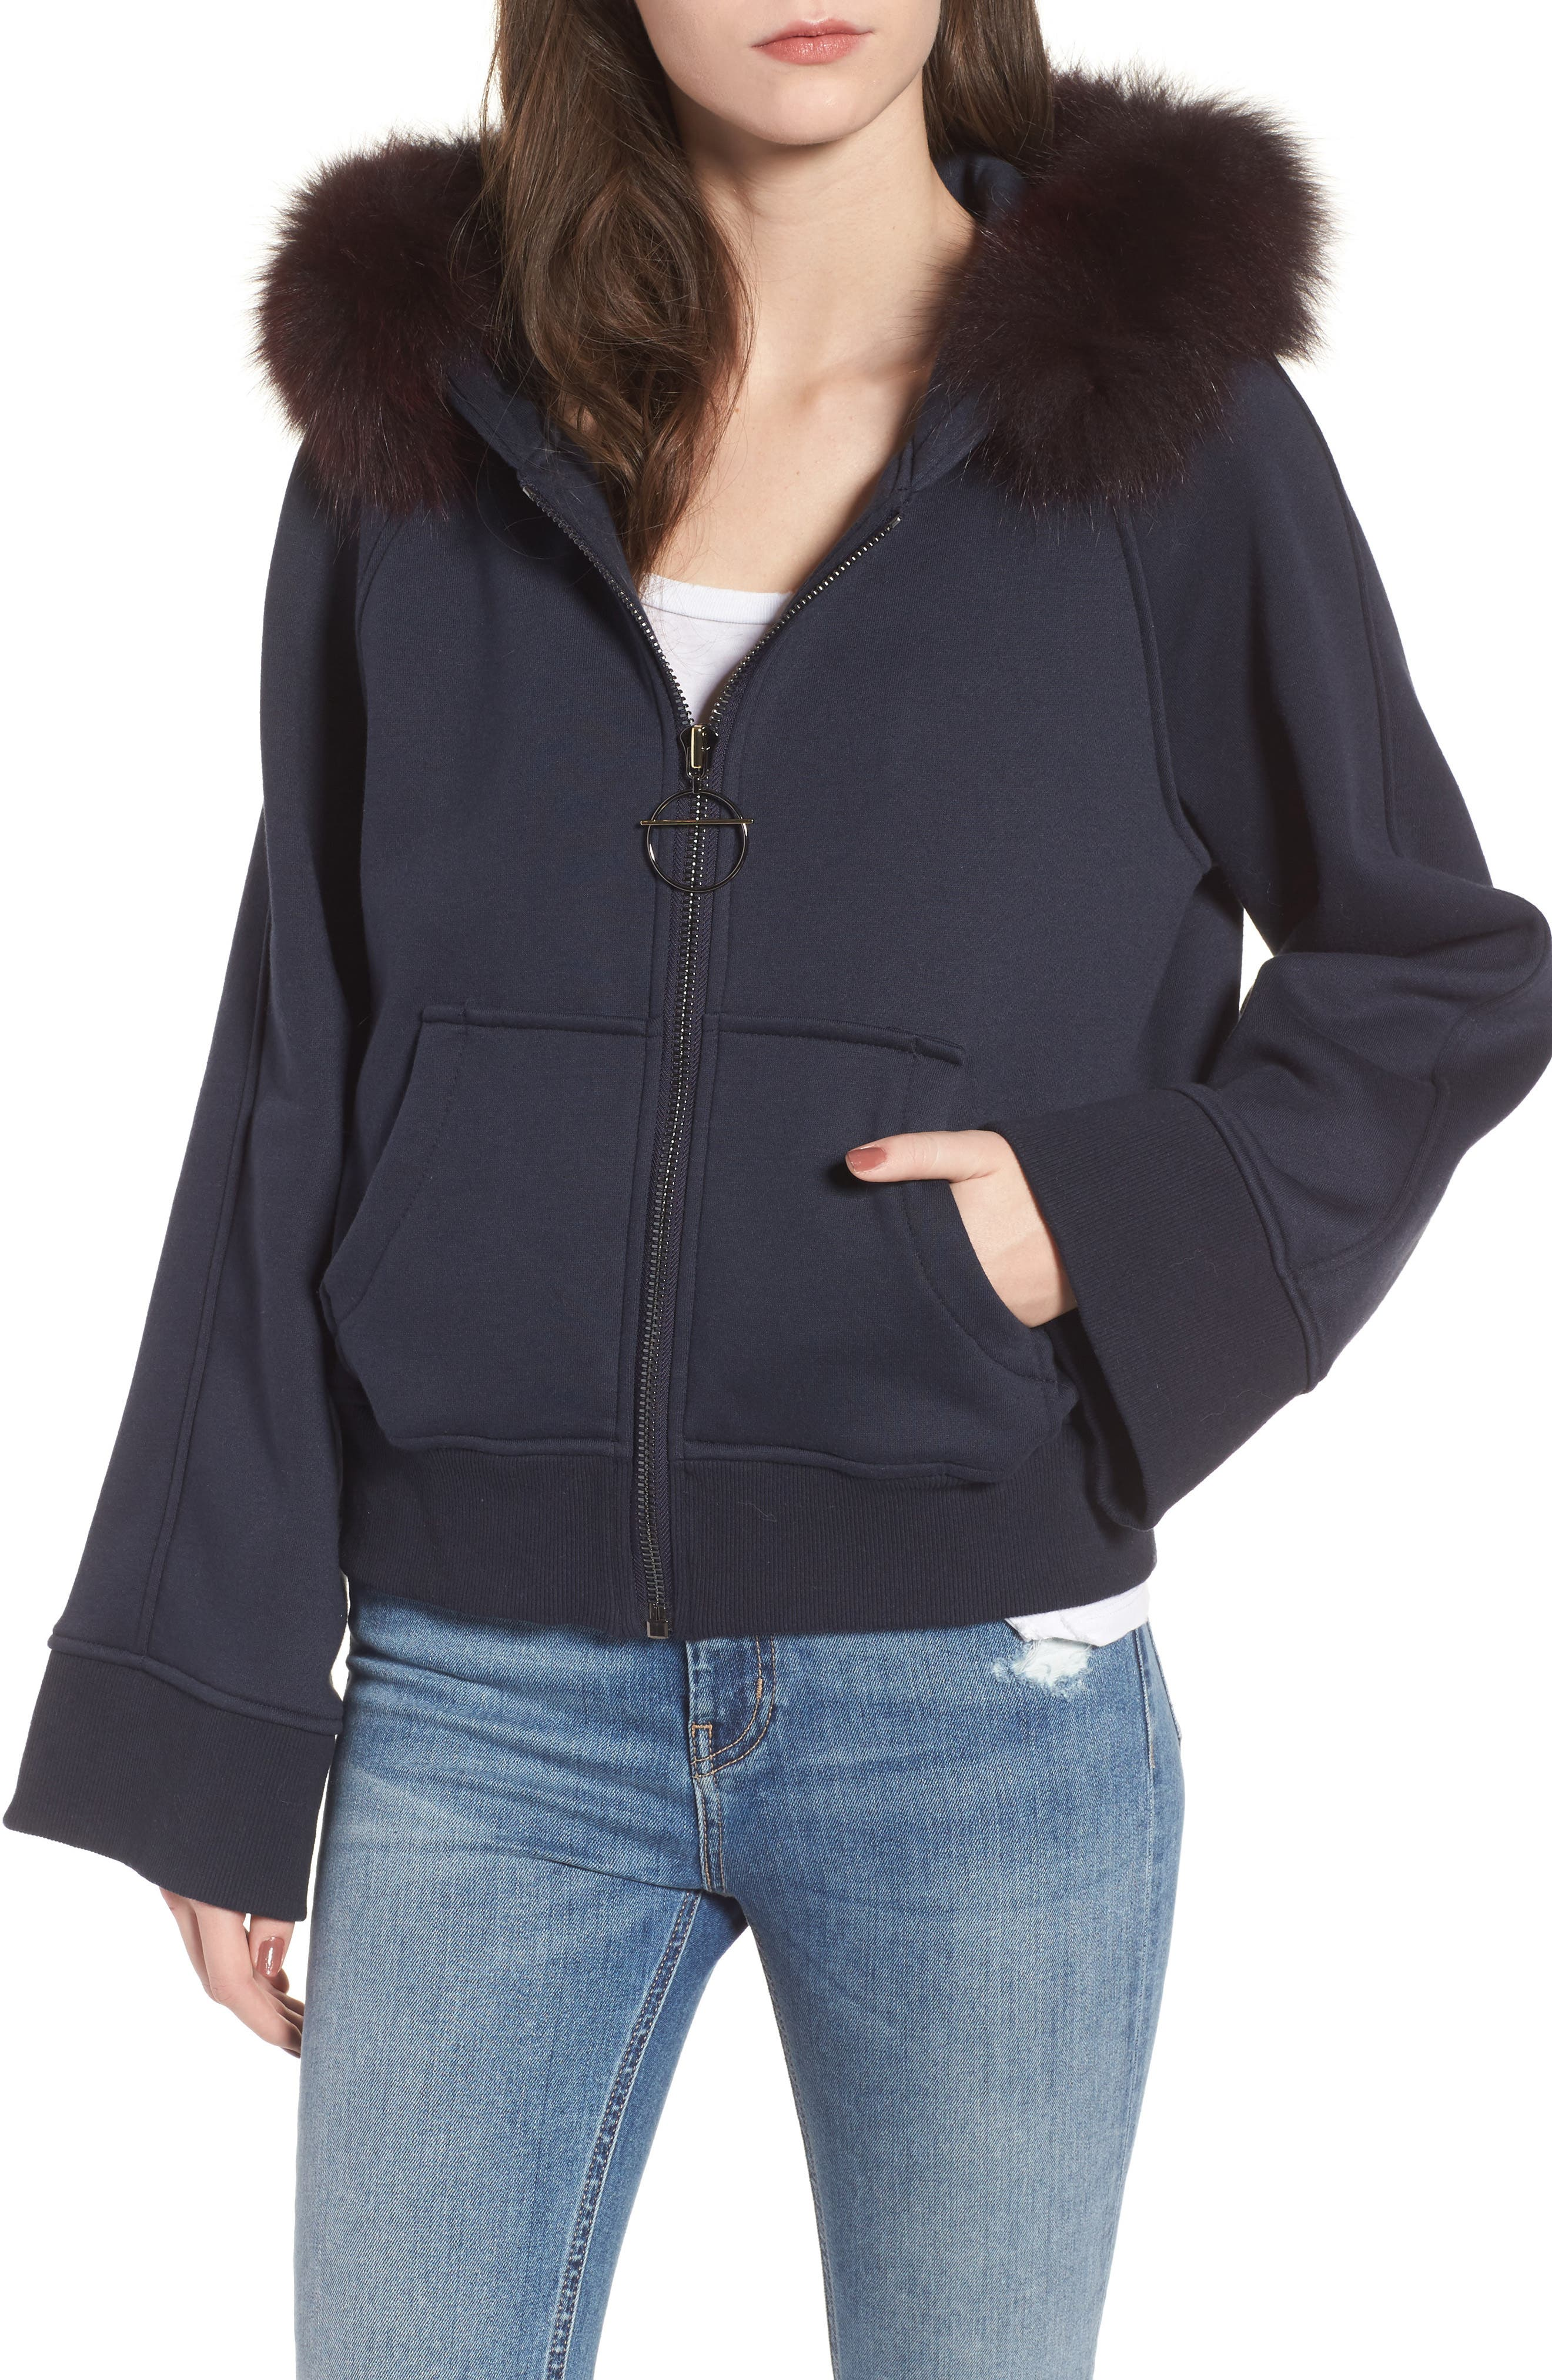 BAGATELLE.CITY The Luxe Hooded Jacket with Genuine Fox Fur Trim,                             Main thumbnail 2, color,